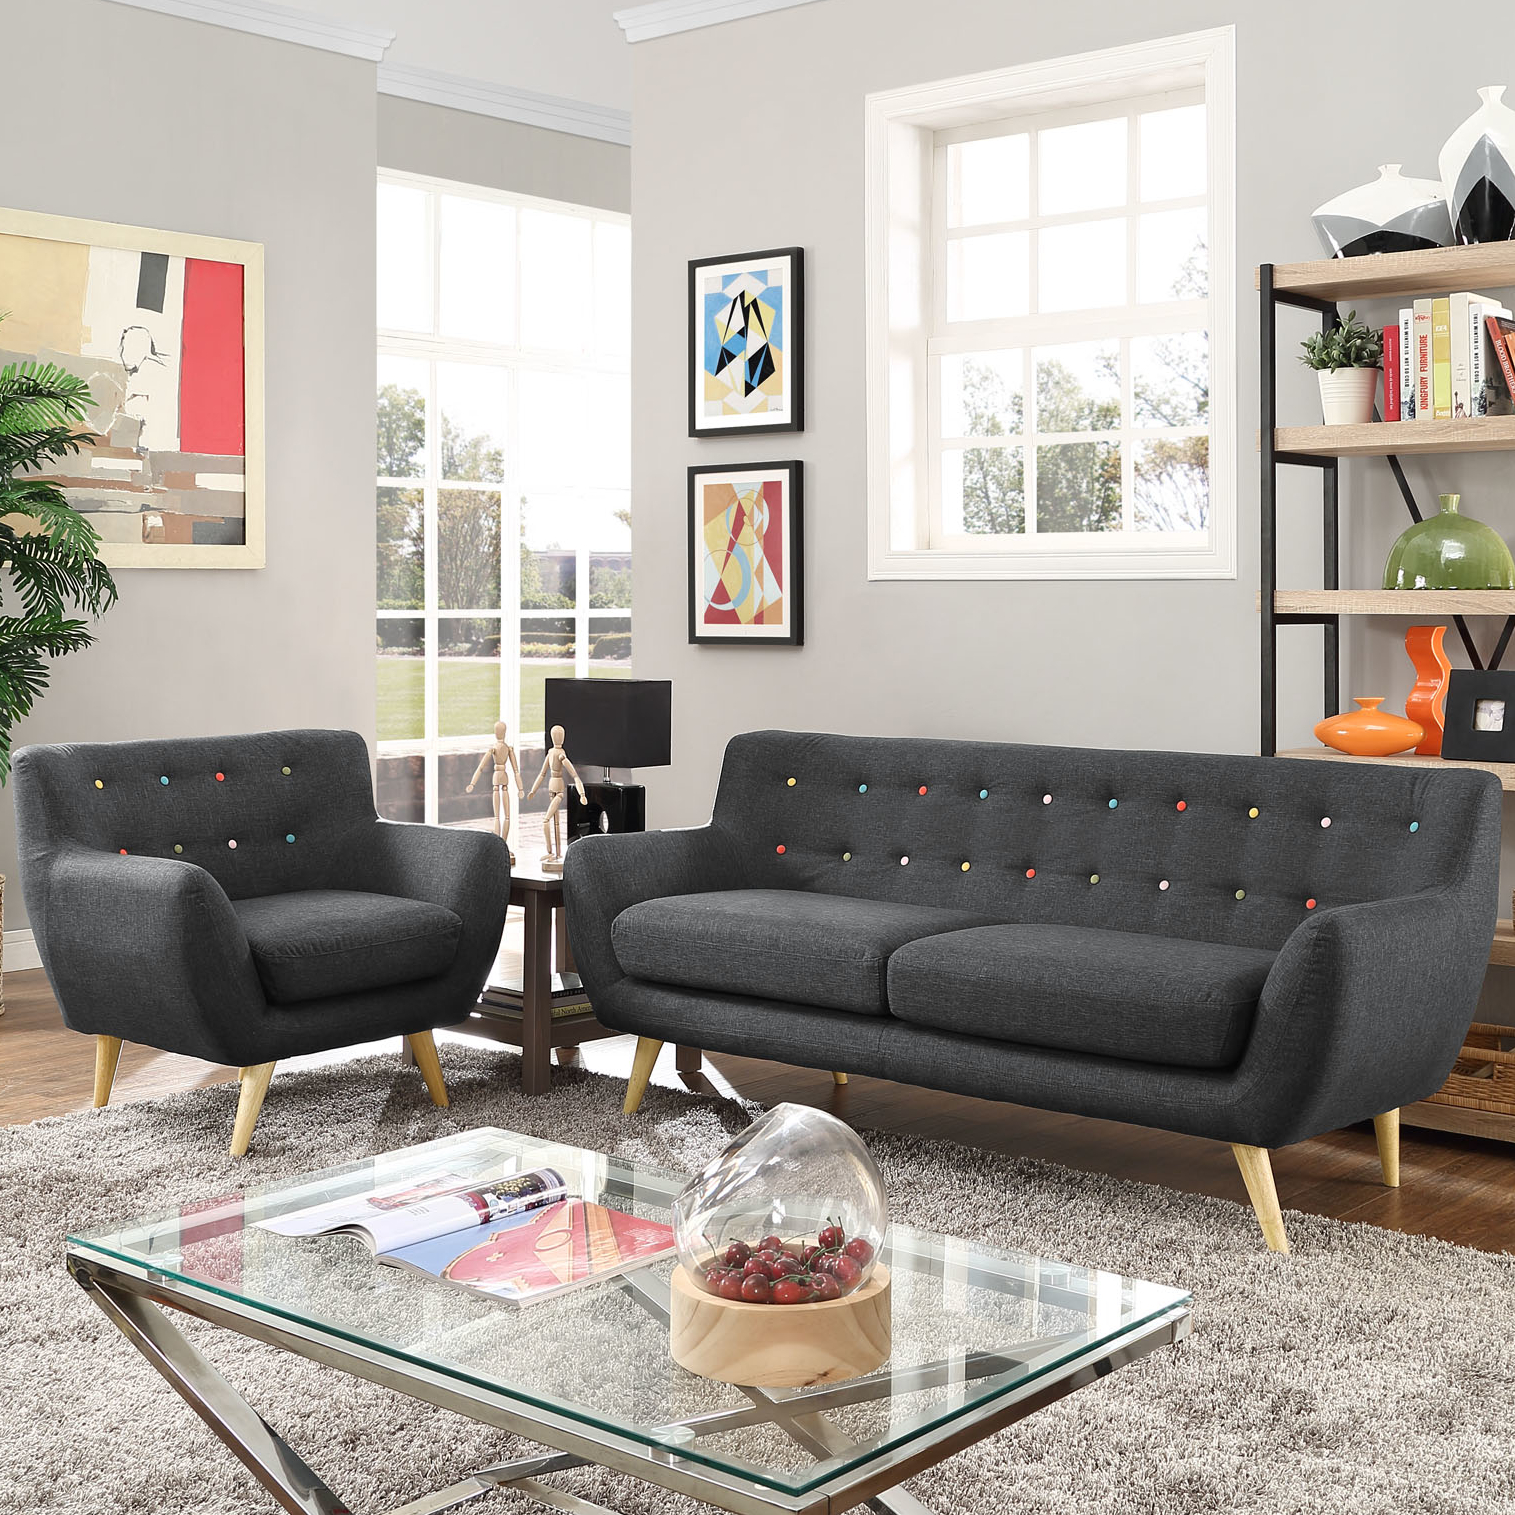 Modern Contemporary Living Room Furniture Allmodern in 14 Awesome Ideas How to Make Very Cheap Living Room Sets